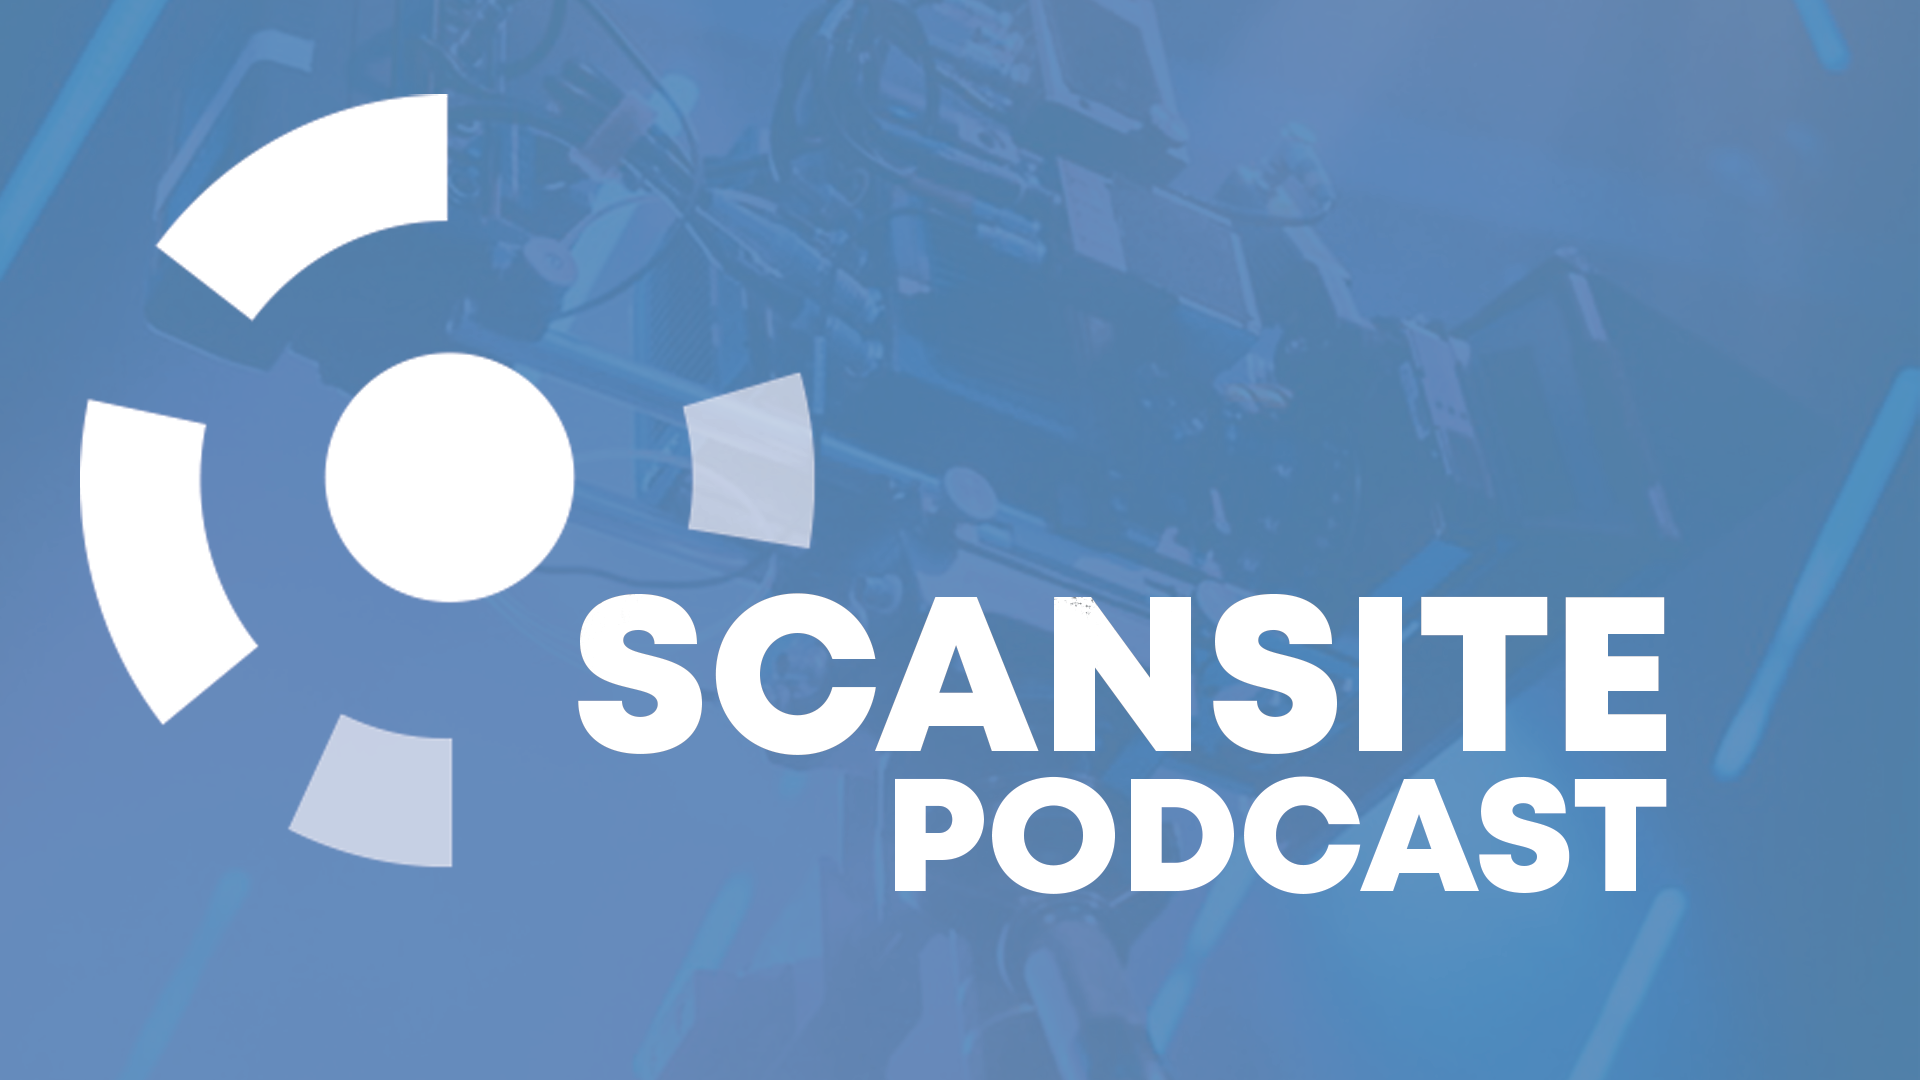 Scansite Podcast, a 3D Conversation